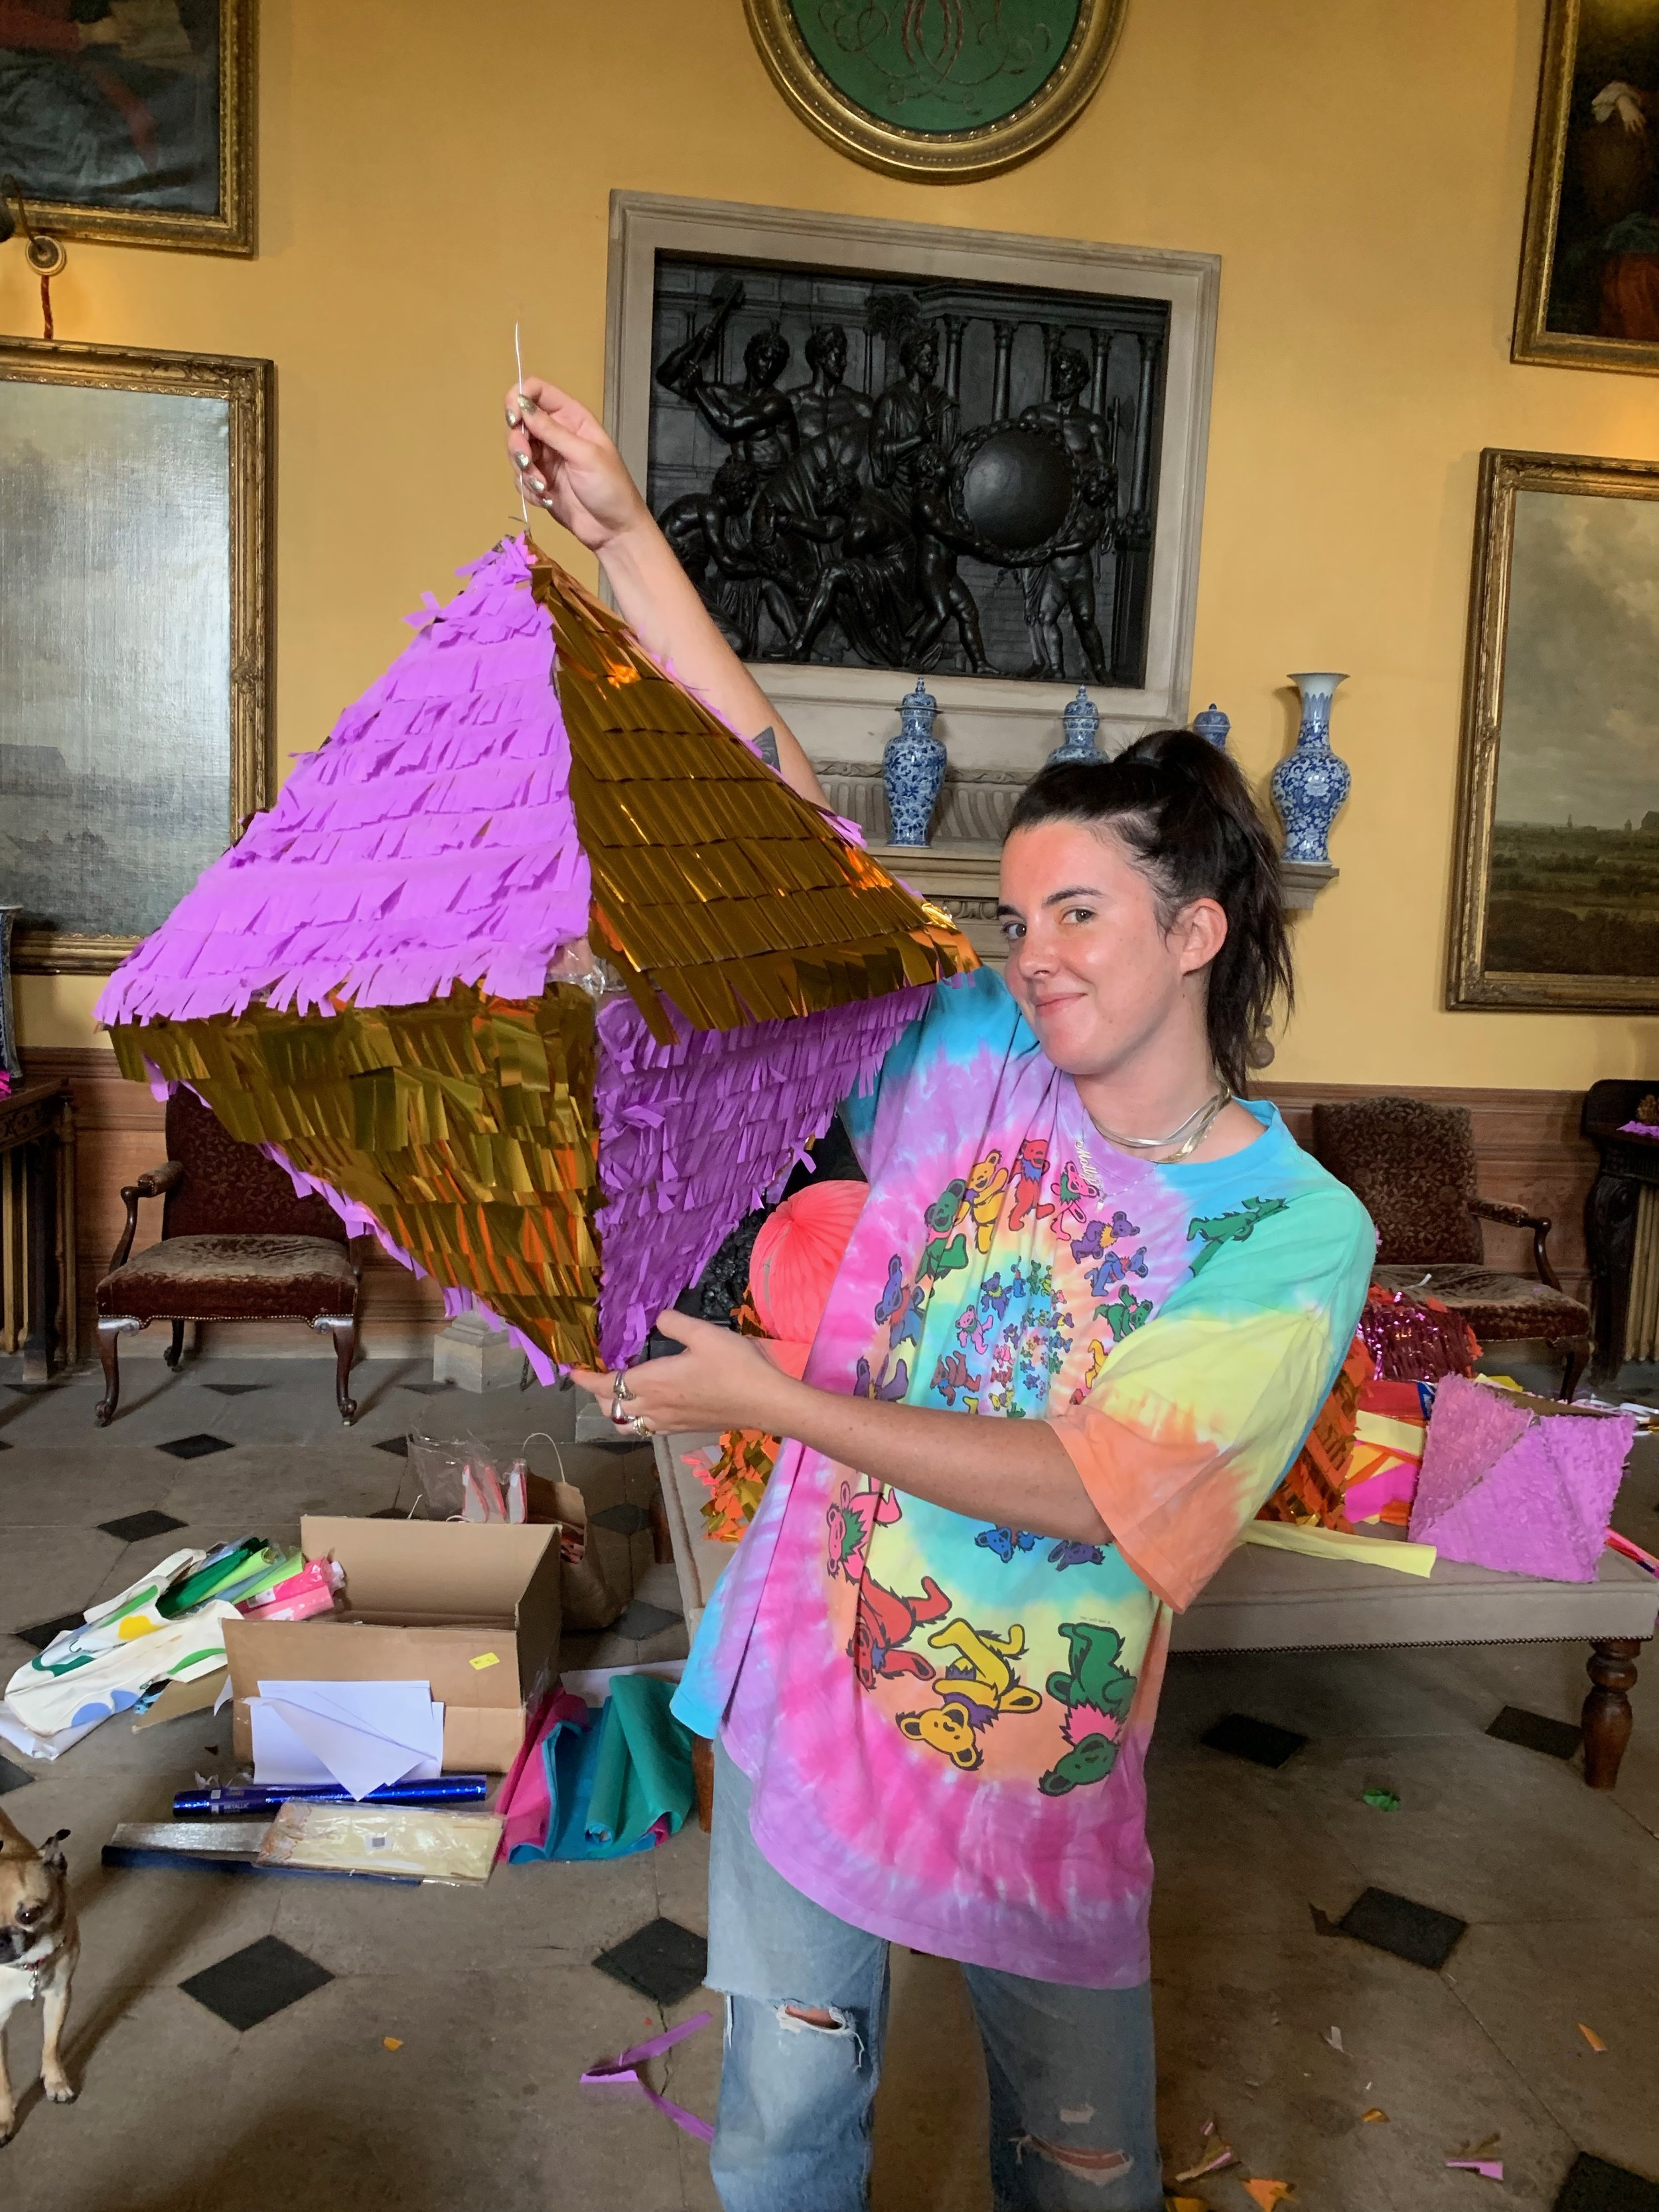 GROUP PIÑATA WORKSHOPS - Enjoy a meditative and relaxing time making piñatas together with your family or work colleagues. This Mexican tradition will bring color to any party! Book your private group session by emailing us at info@studiocruz.co.uk.